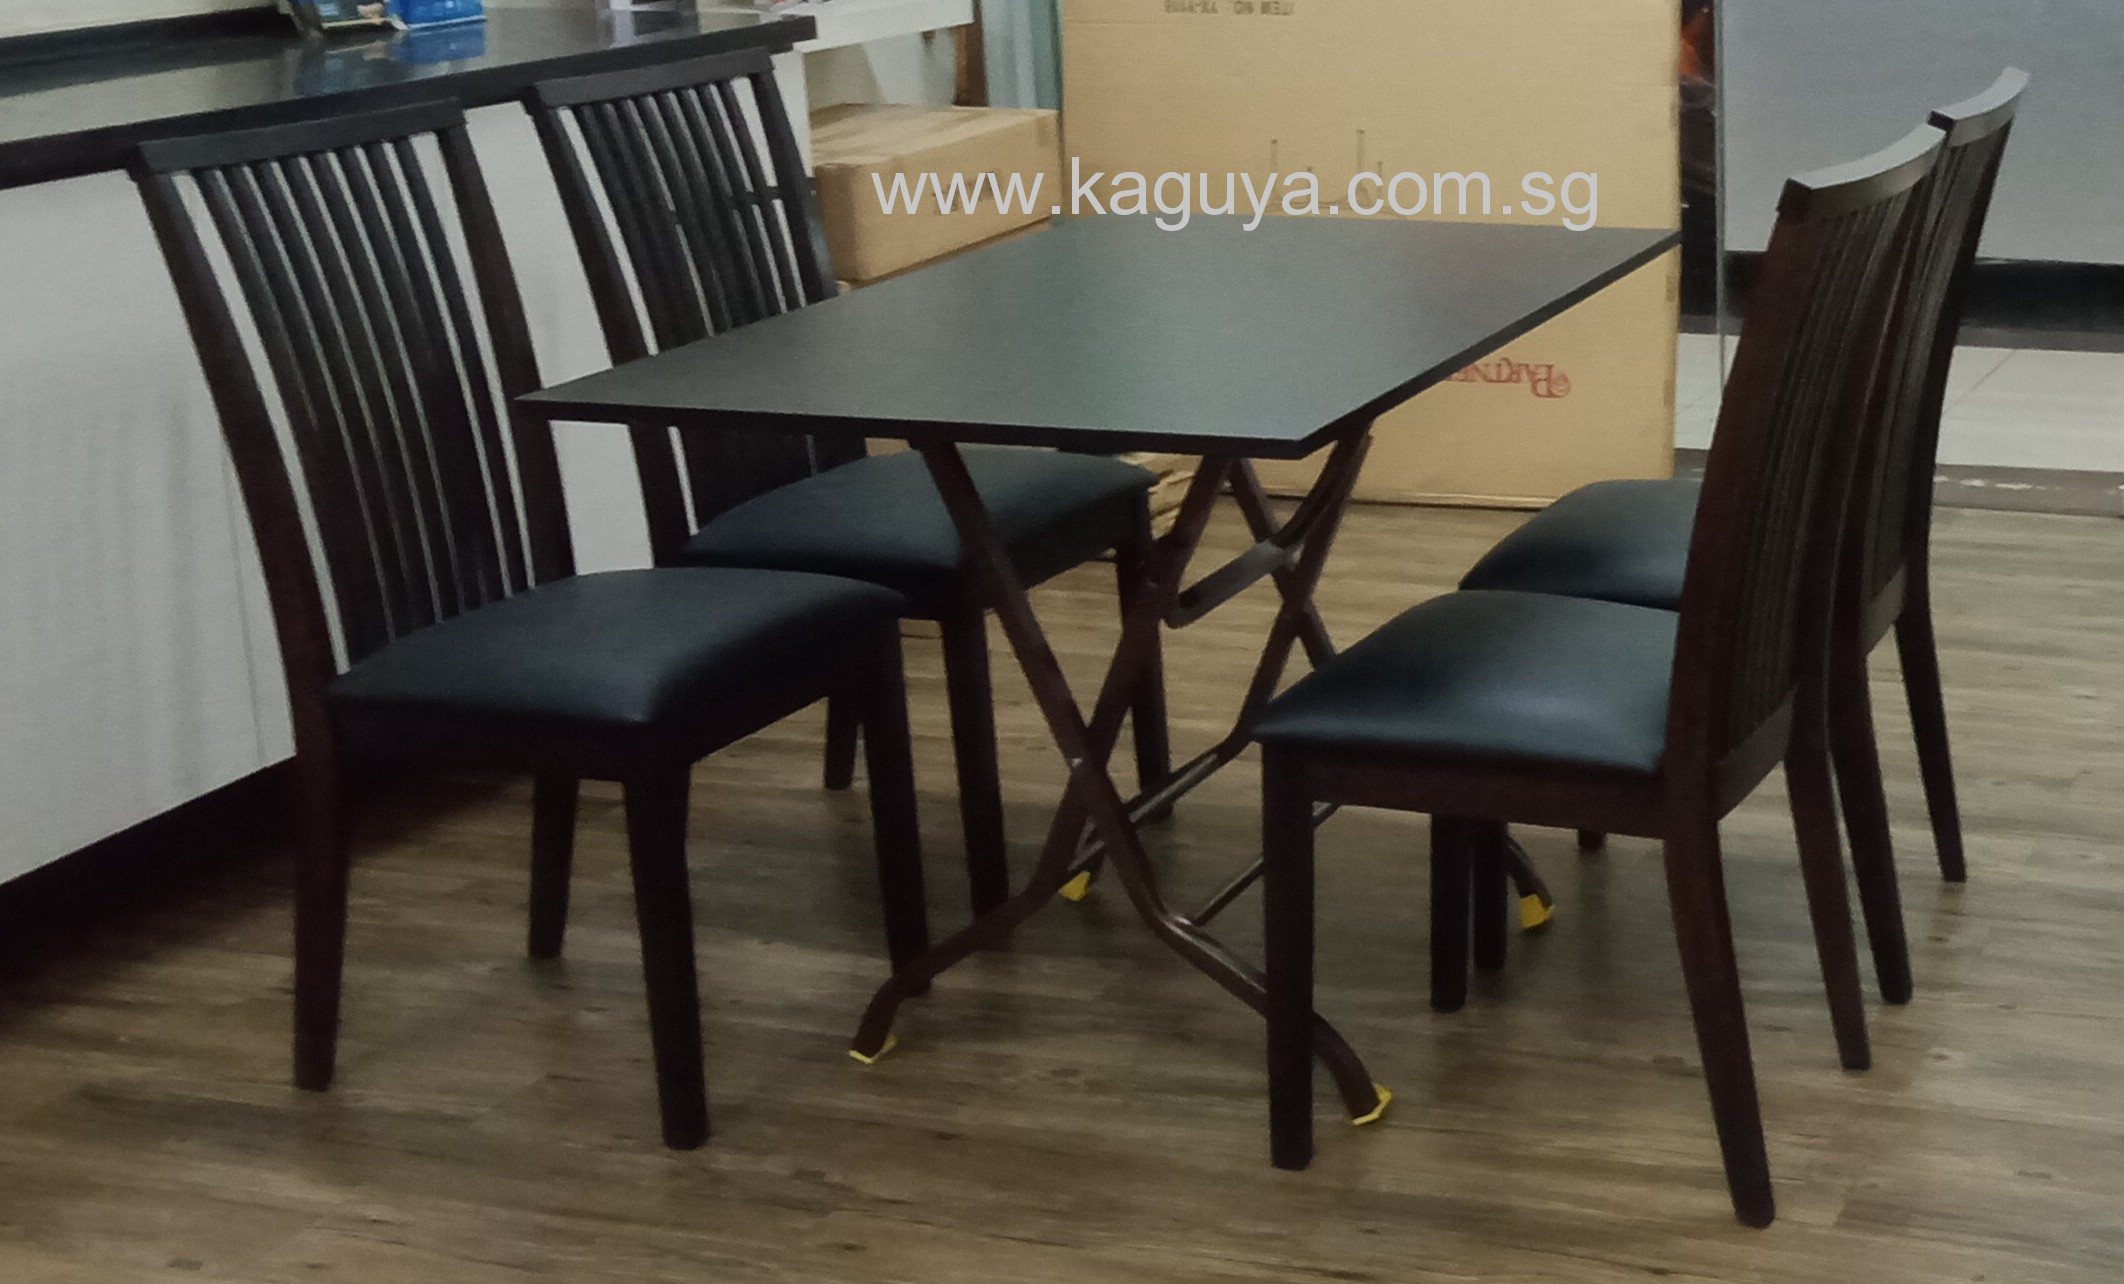 Foldable Cafe Table / Folding Table / Rubber Wood Folding Restaurant Table /2 x 4 Rubber Wood Table Top / Foldable Wooden Table Top for residential